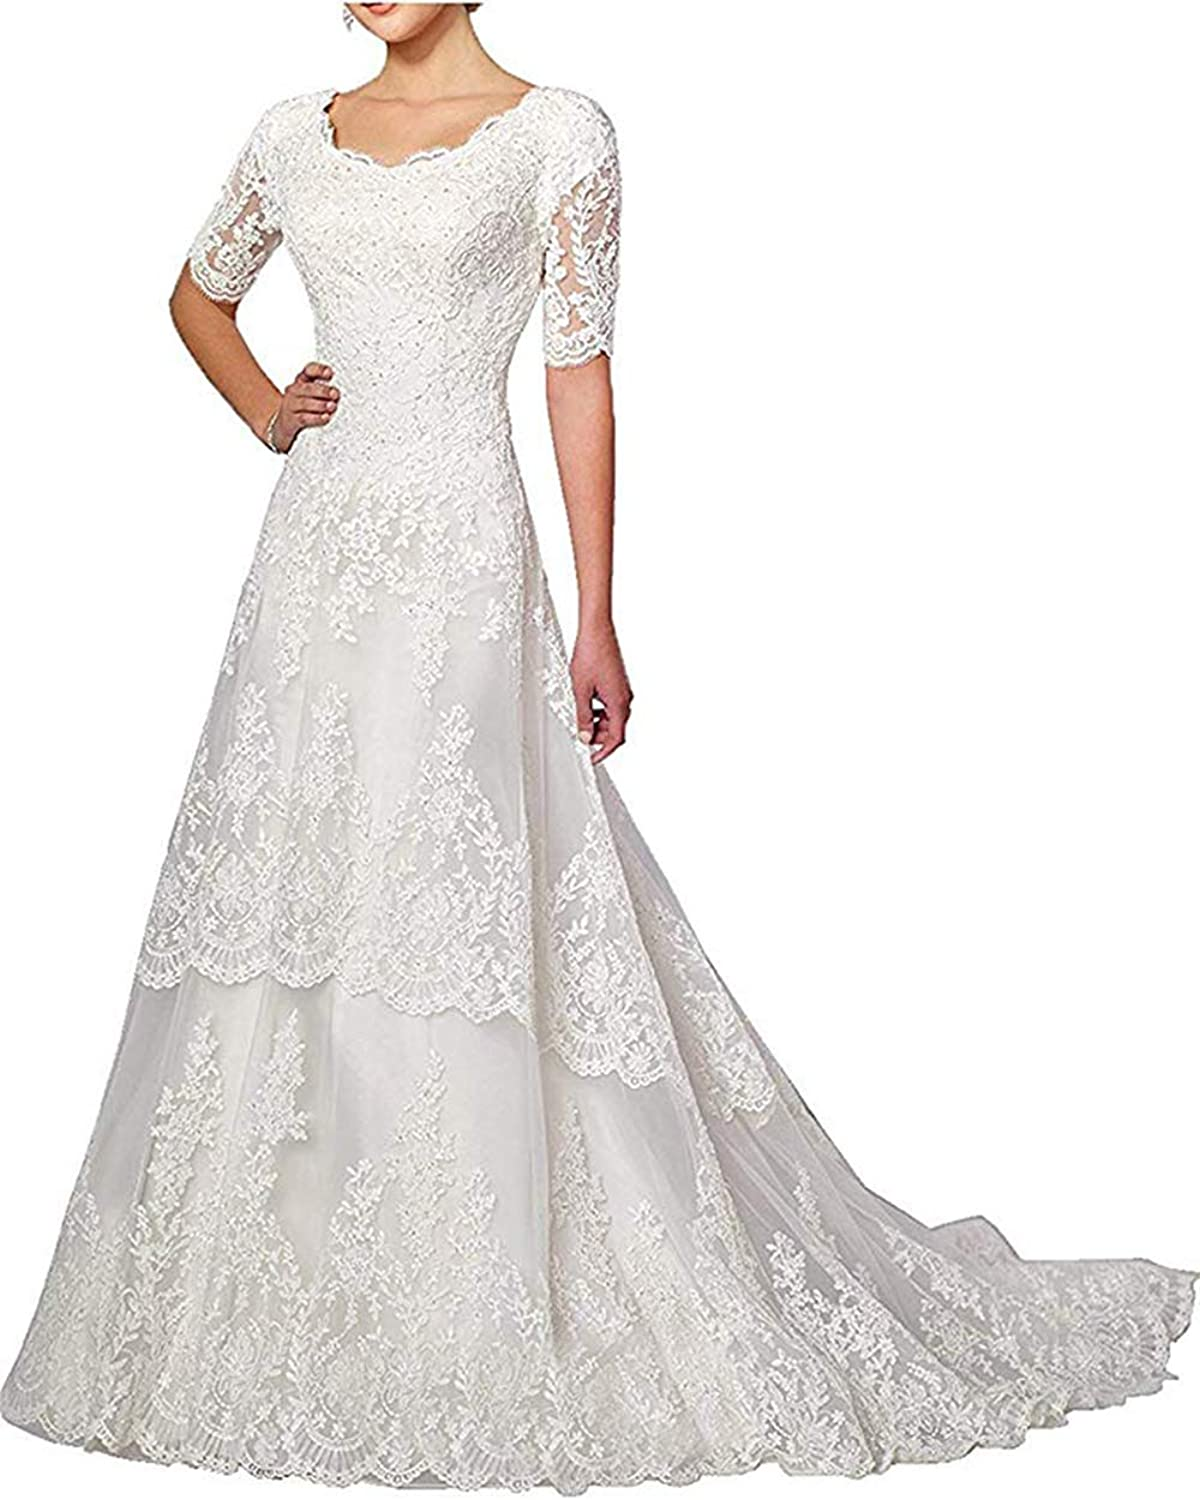 Women's Lace Wedding Dresses for Bride with Sleeves 2019 Beaded Appliques Wedding Gown Bridal Dresses with Train